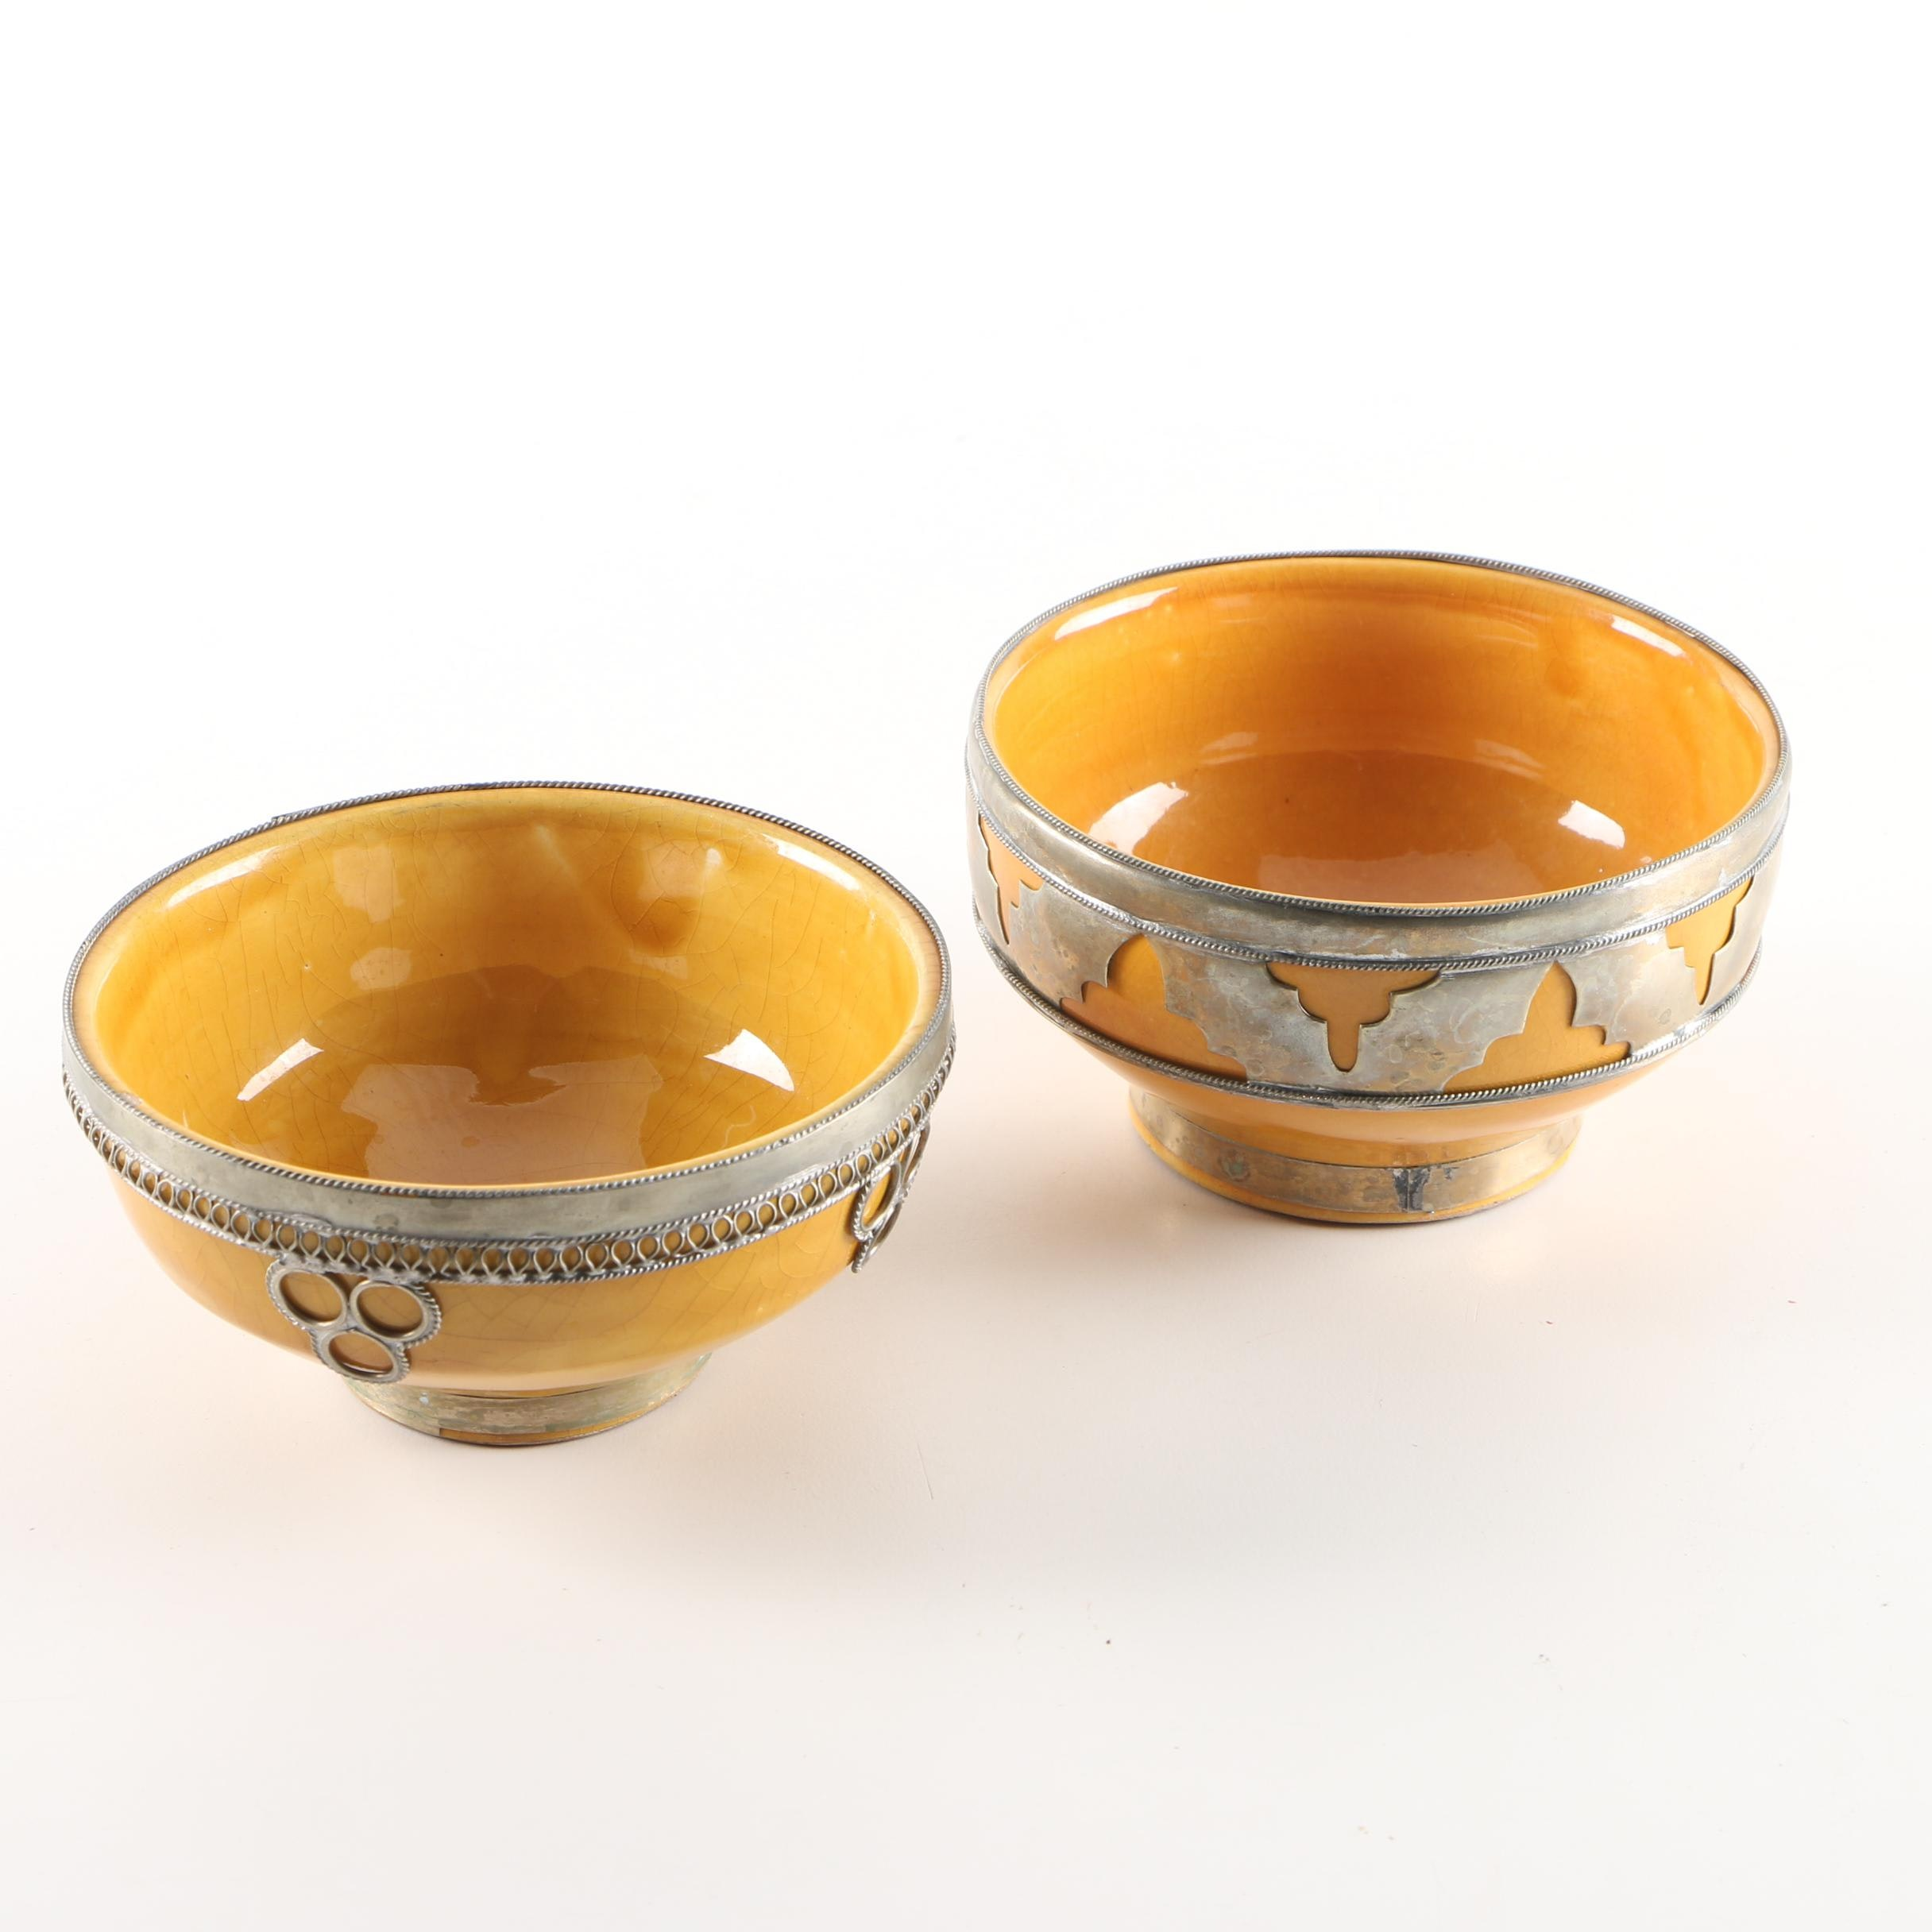 Moroccan Ceramic Bowls with Decorative Silver Tone Accents